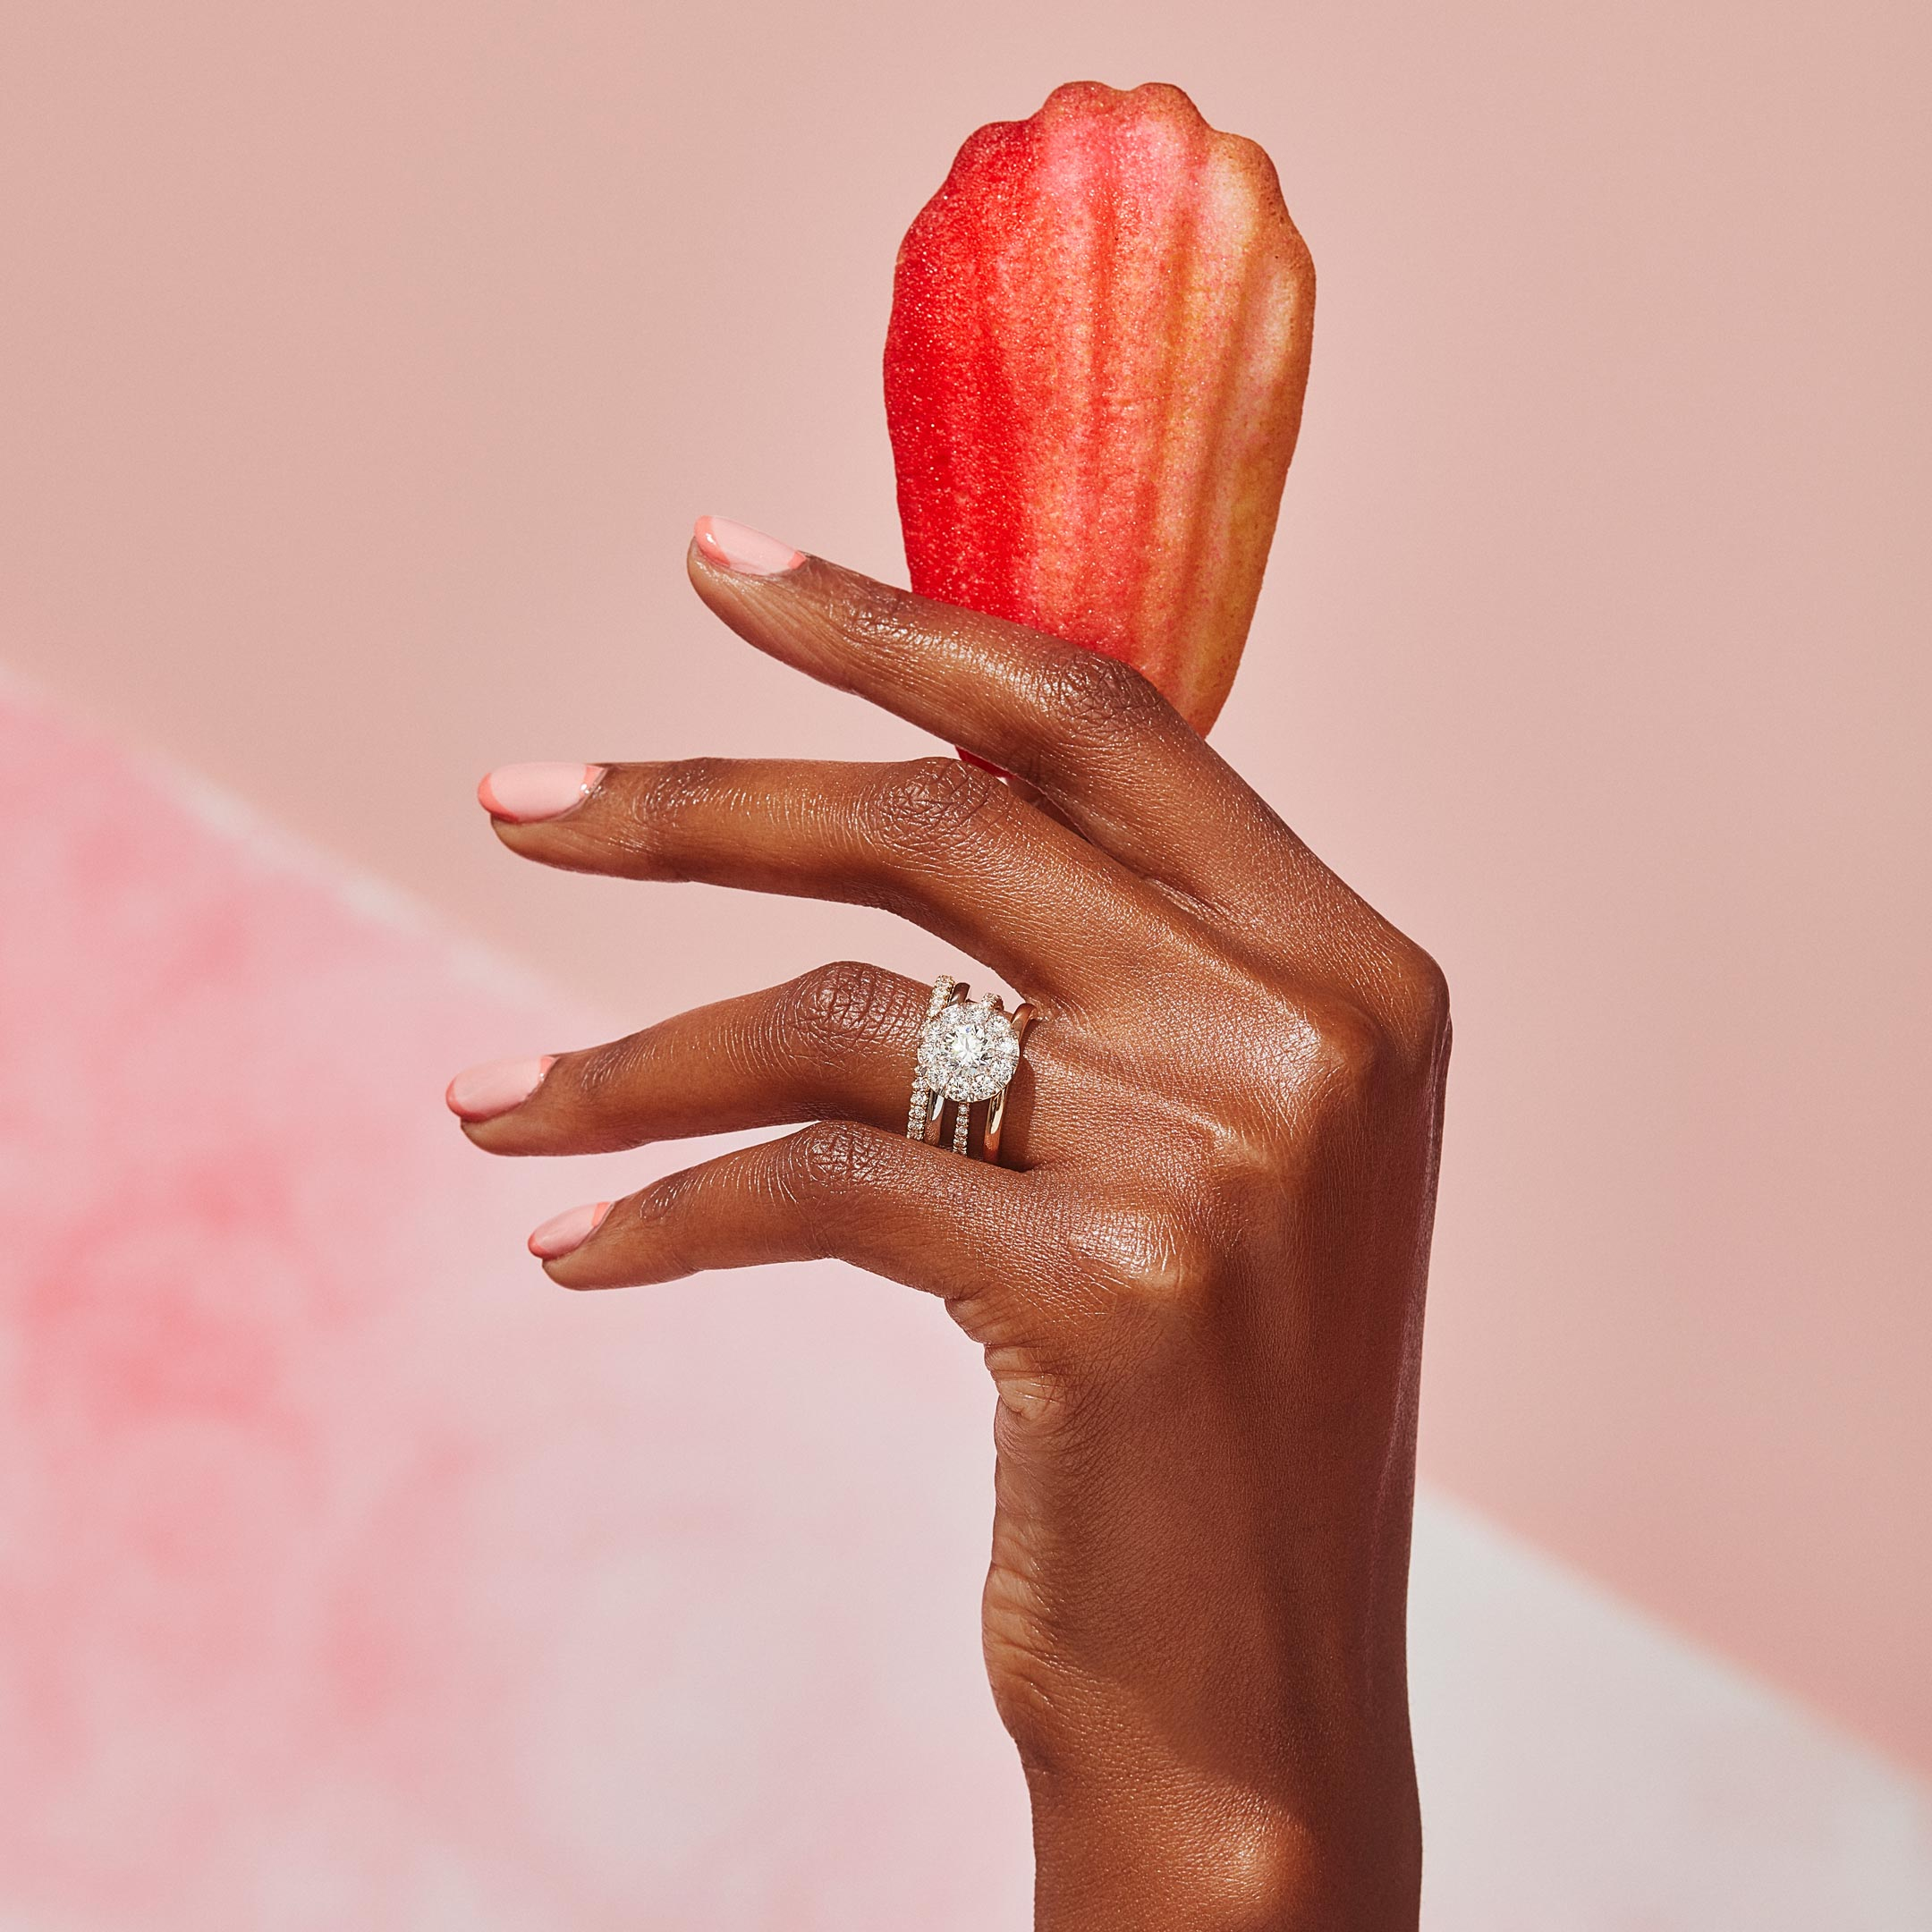 Eloise Round Brilliant Seamless Solitaire™ Engagement Ring with a diamond pavé band in 18k Rose Gold Hand with Cookie Lifestyle by Oui by Jean Dousset